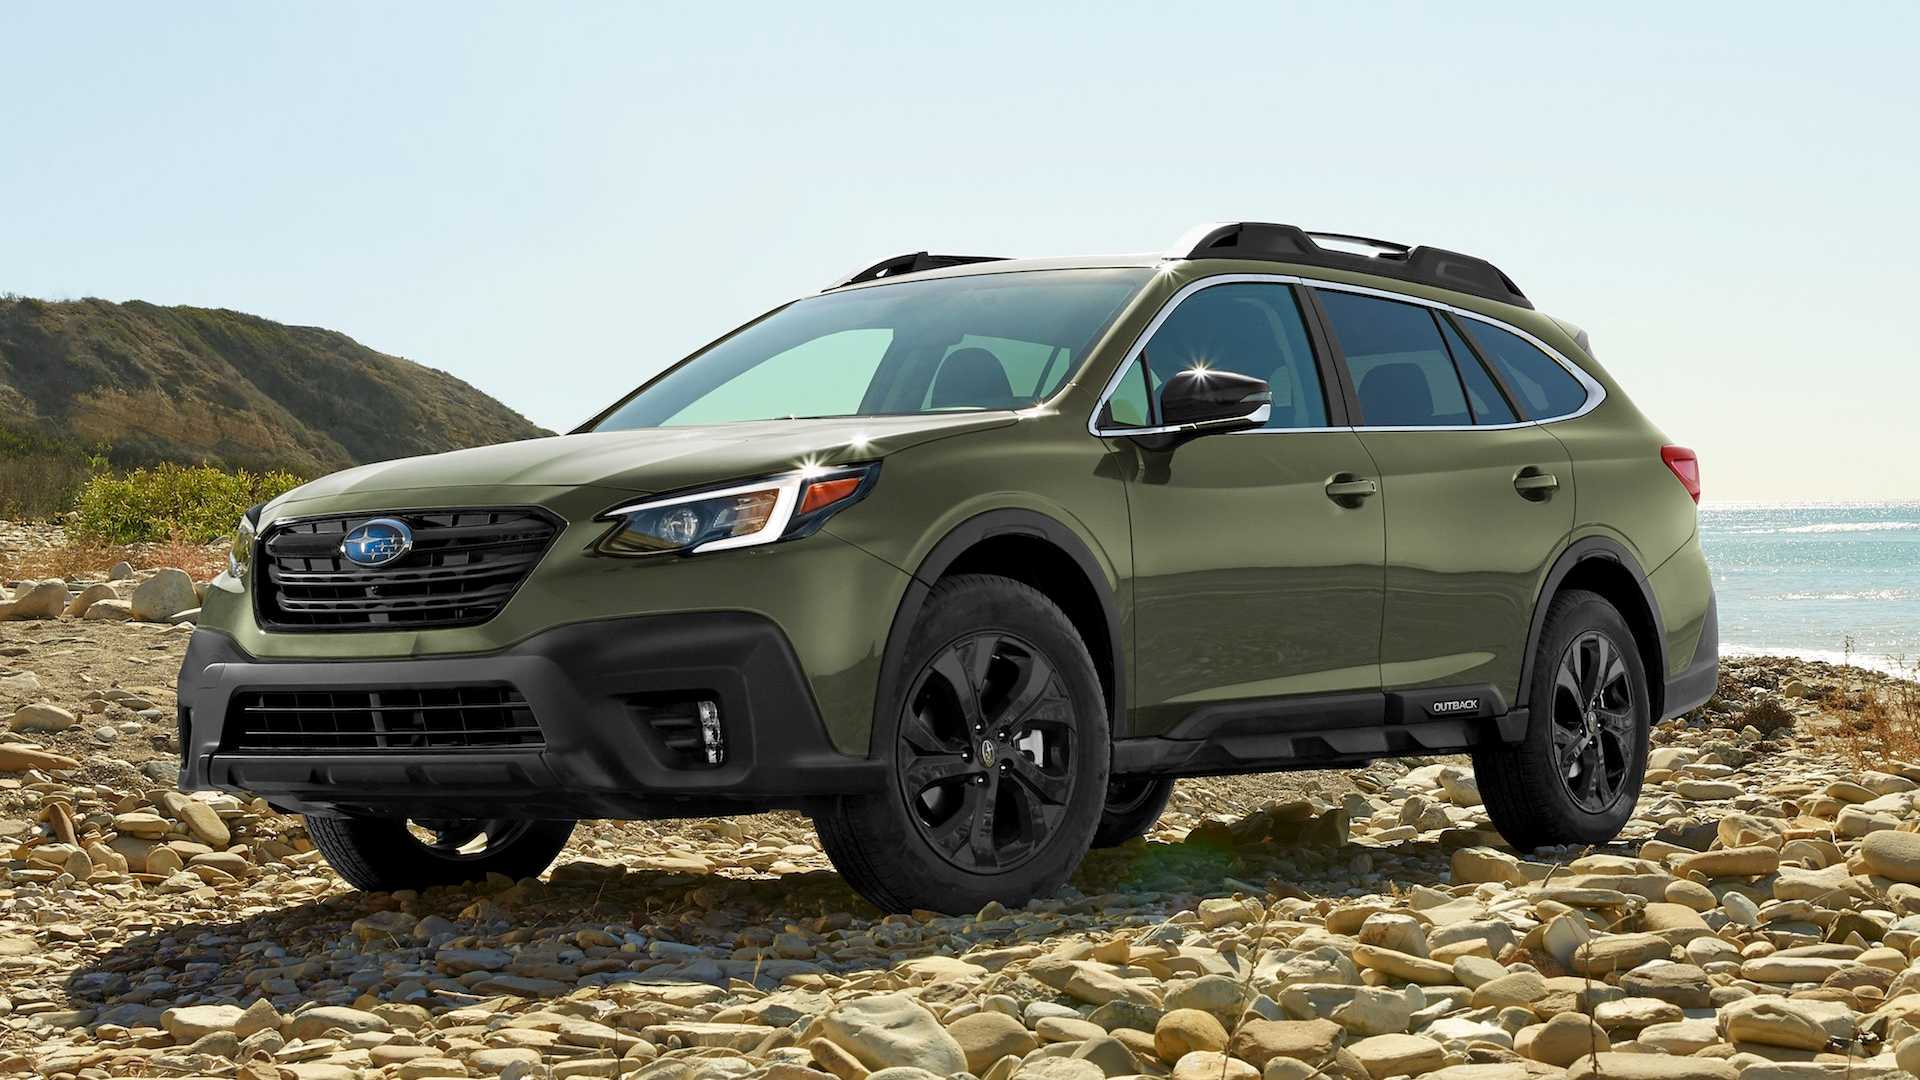 88 Great 2020 Subaru Outback Exterior Colors Pictures for 2020 Subaru Outback Exterior Colors